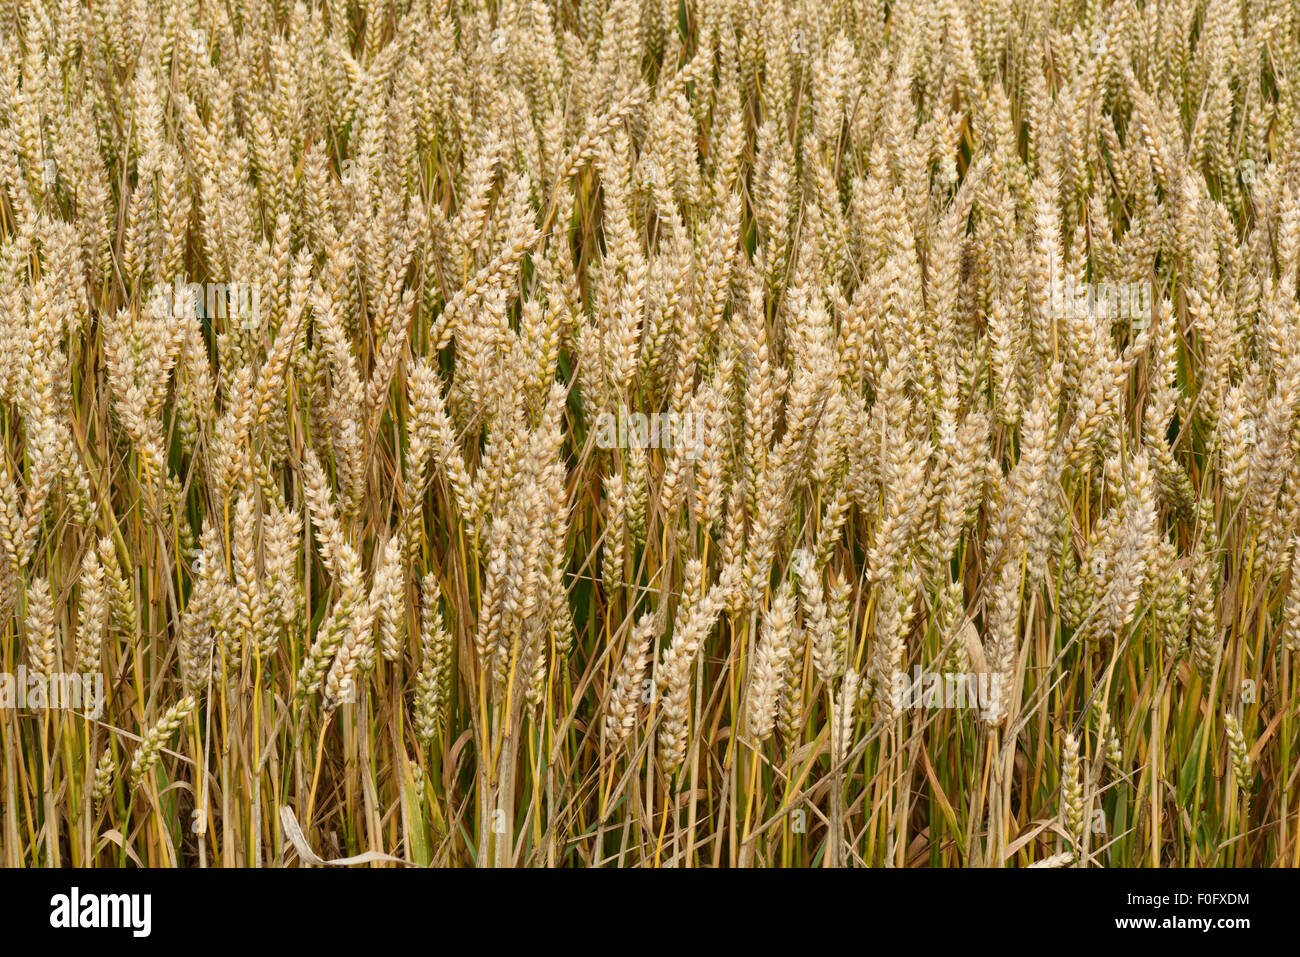 Ears and plants of winter wheat crop ripening, Berkshire, August - Stock Image